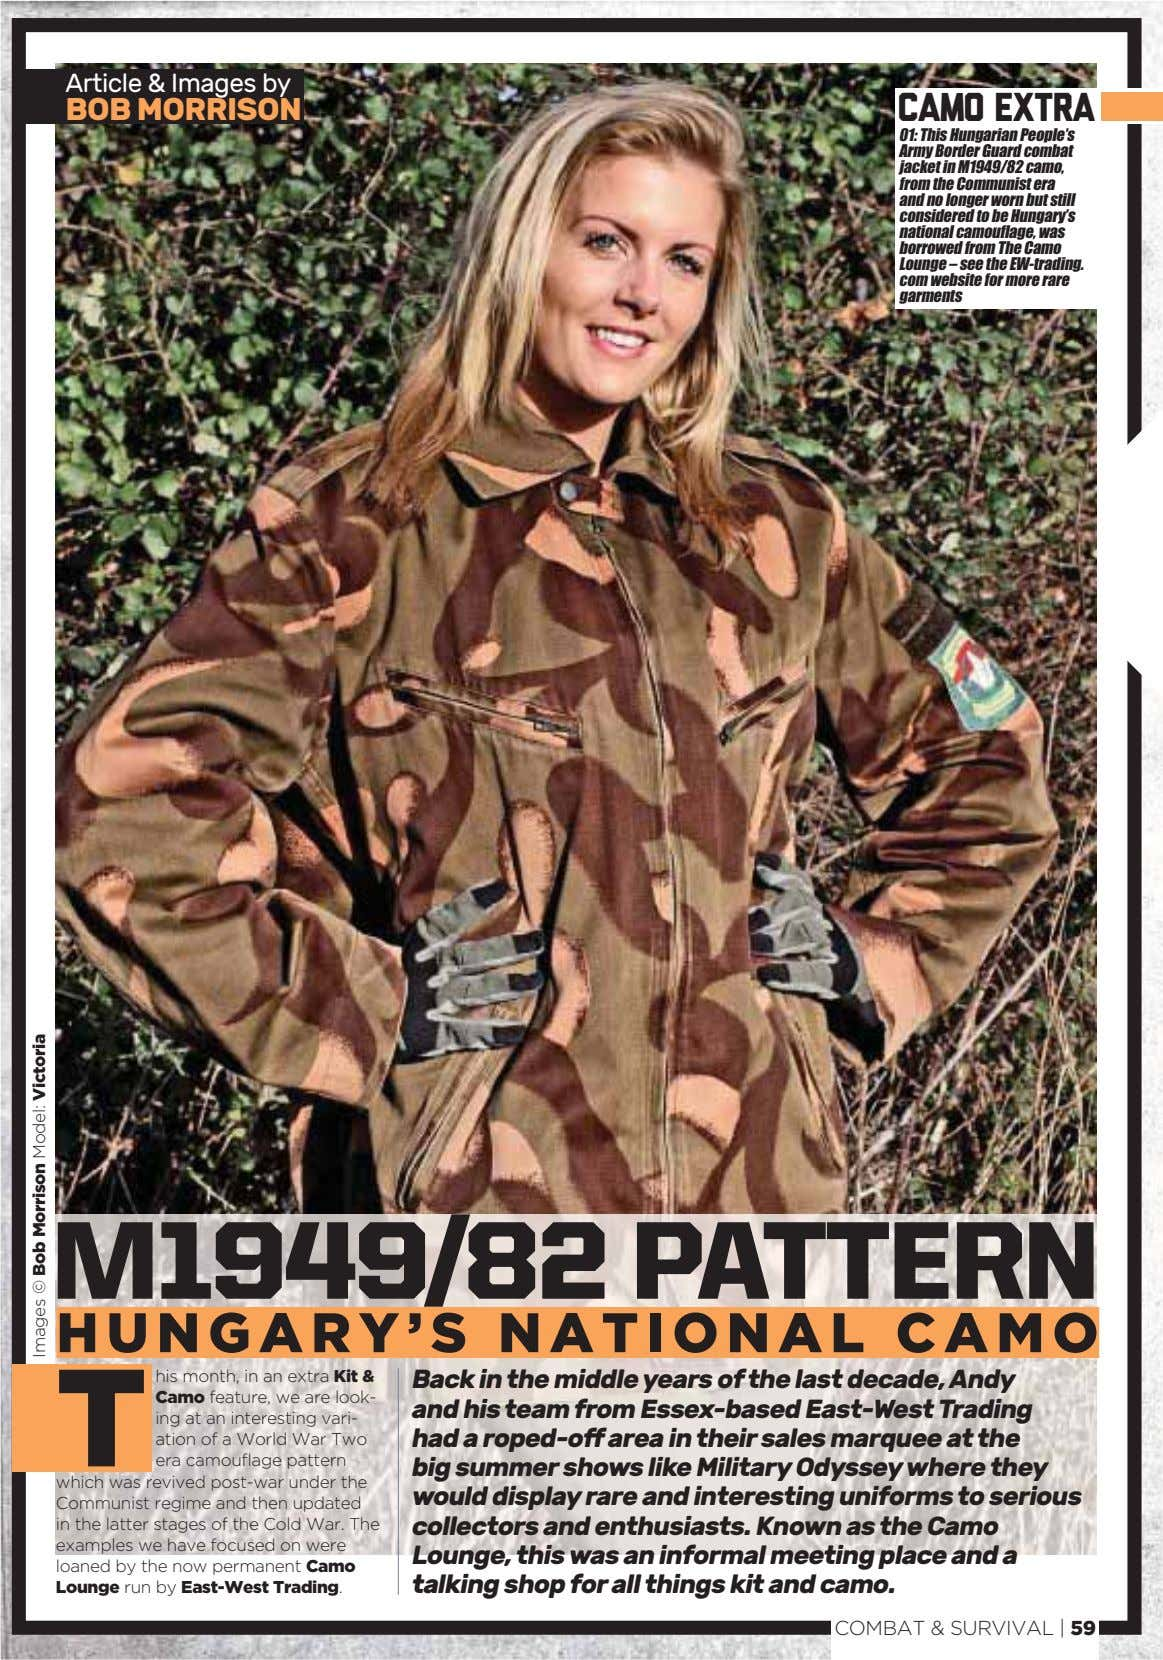 Article & Images by BOB MORRISON camo extra 01: This Hungarian People's Army Border Guard